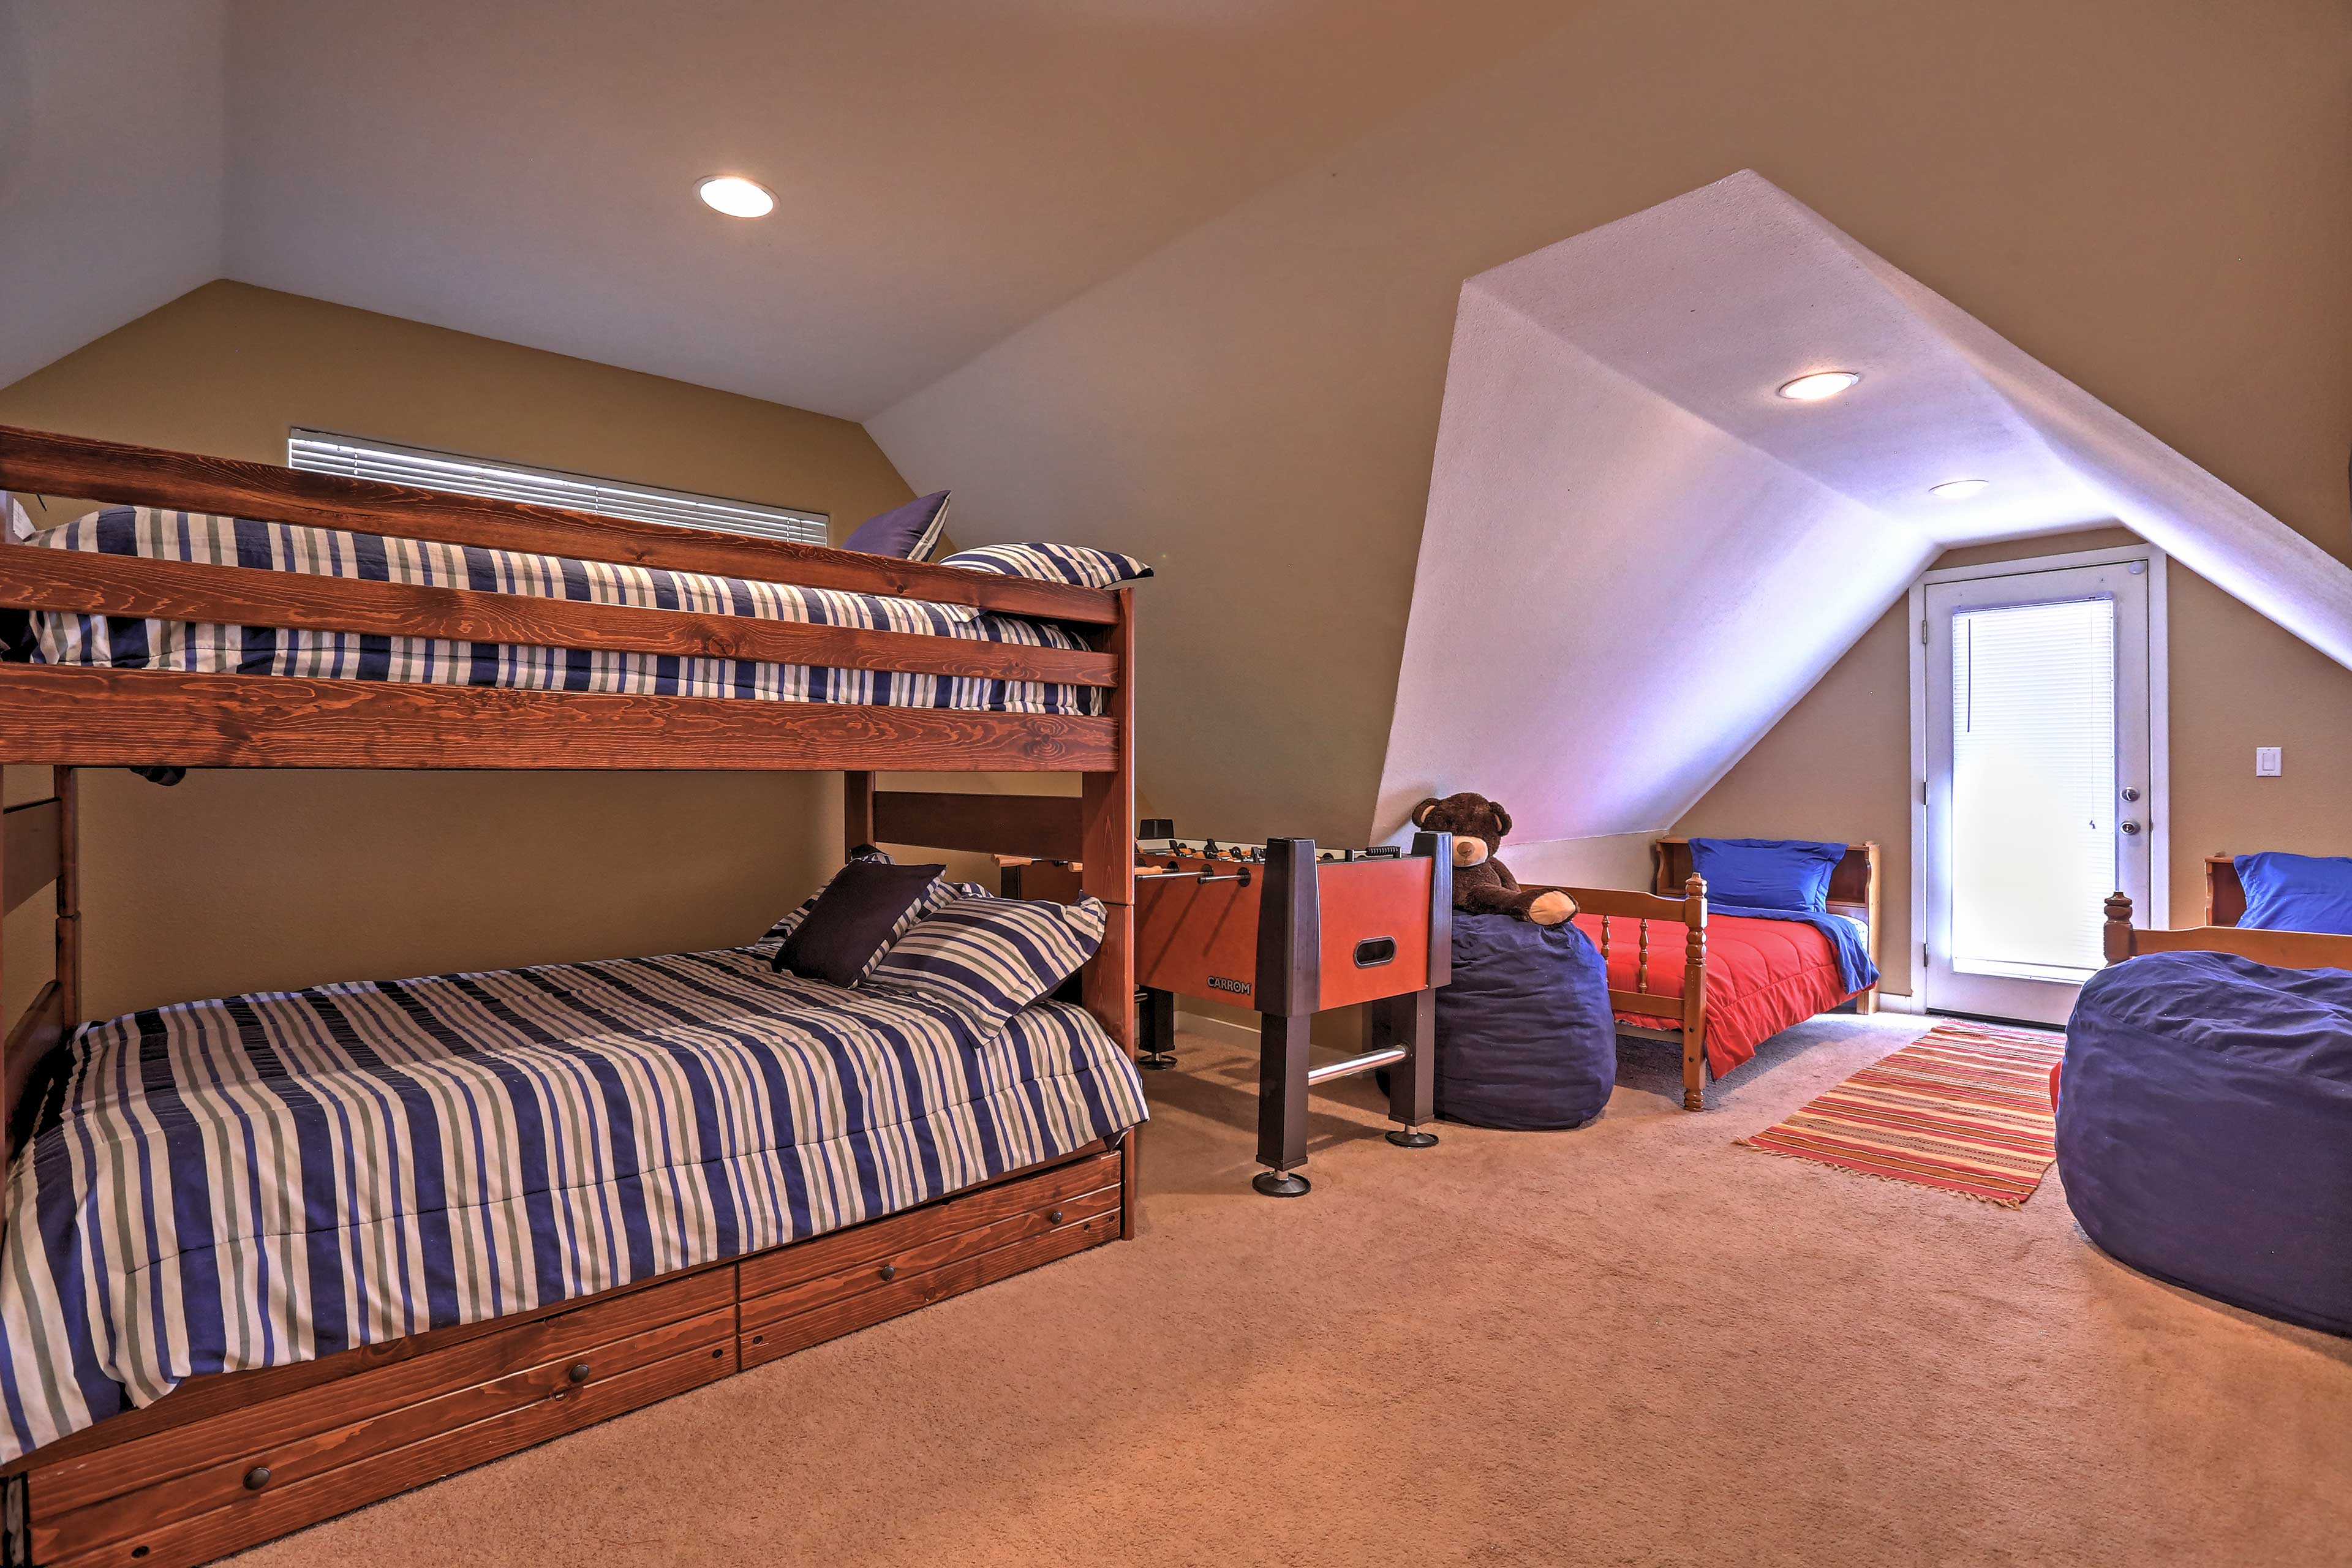 Full-over-full bunk beds, 2 twin beds, and a twin trundle bed highlight the last bedroom.